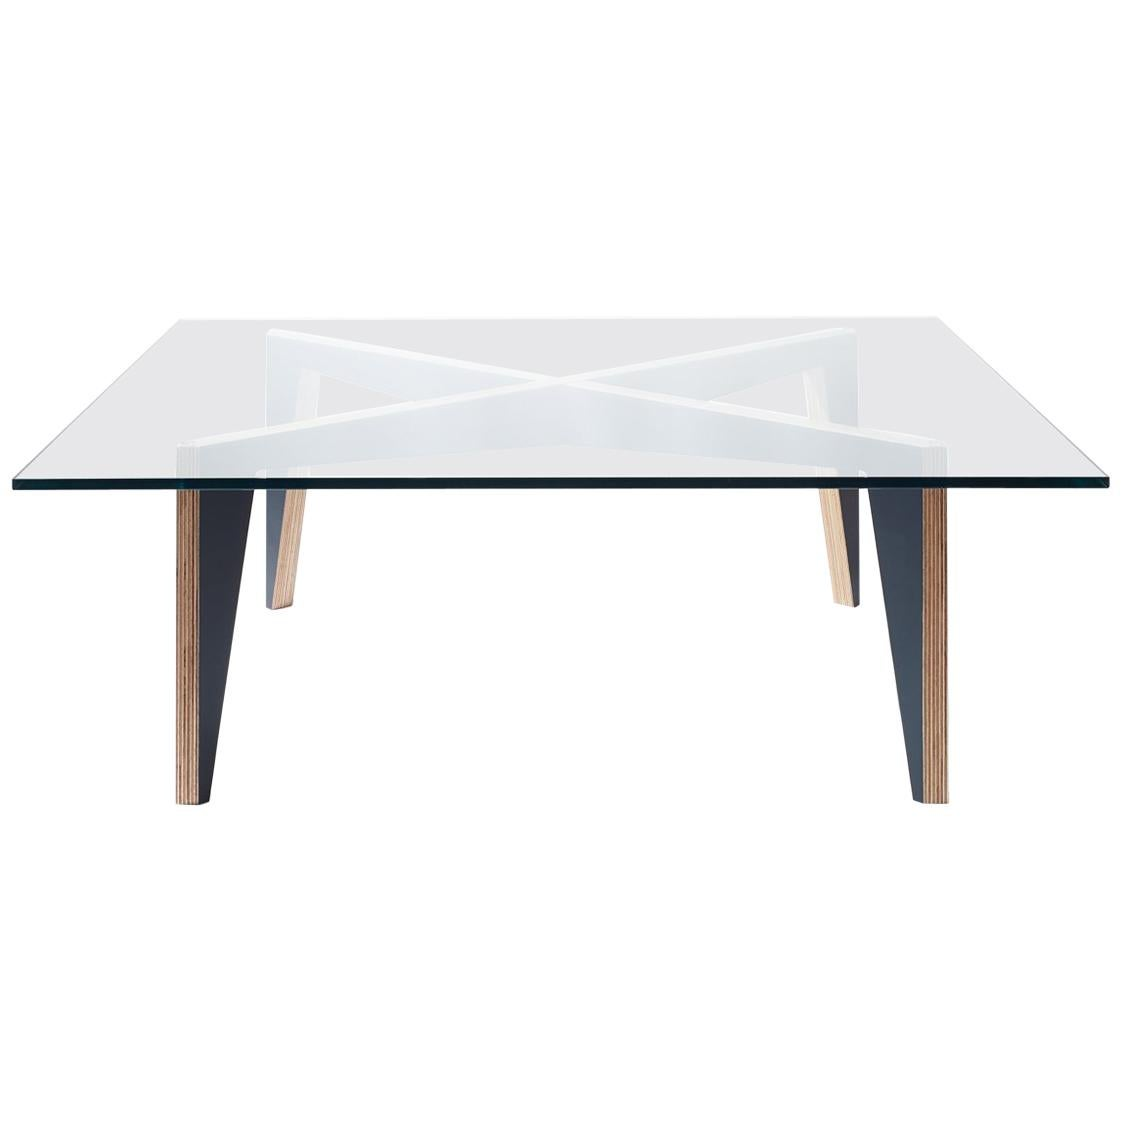 Cross Legs Wood Coffee Table Black with Glass Top by Miduny, Made in Italy